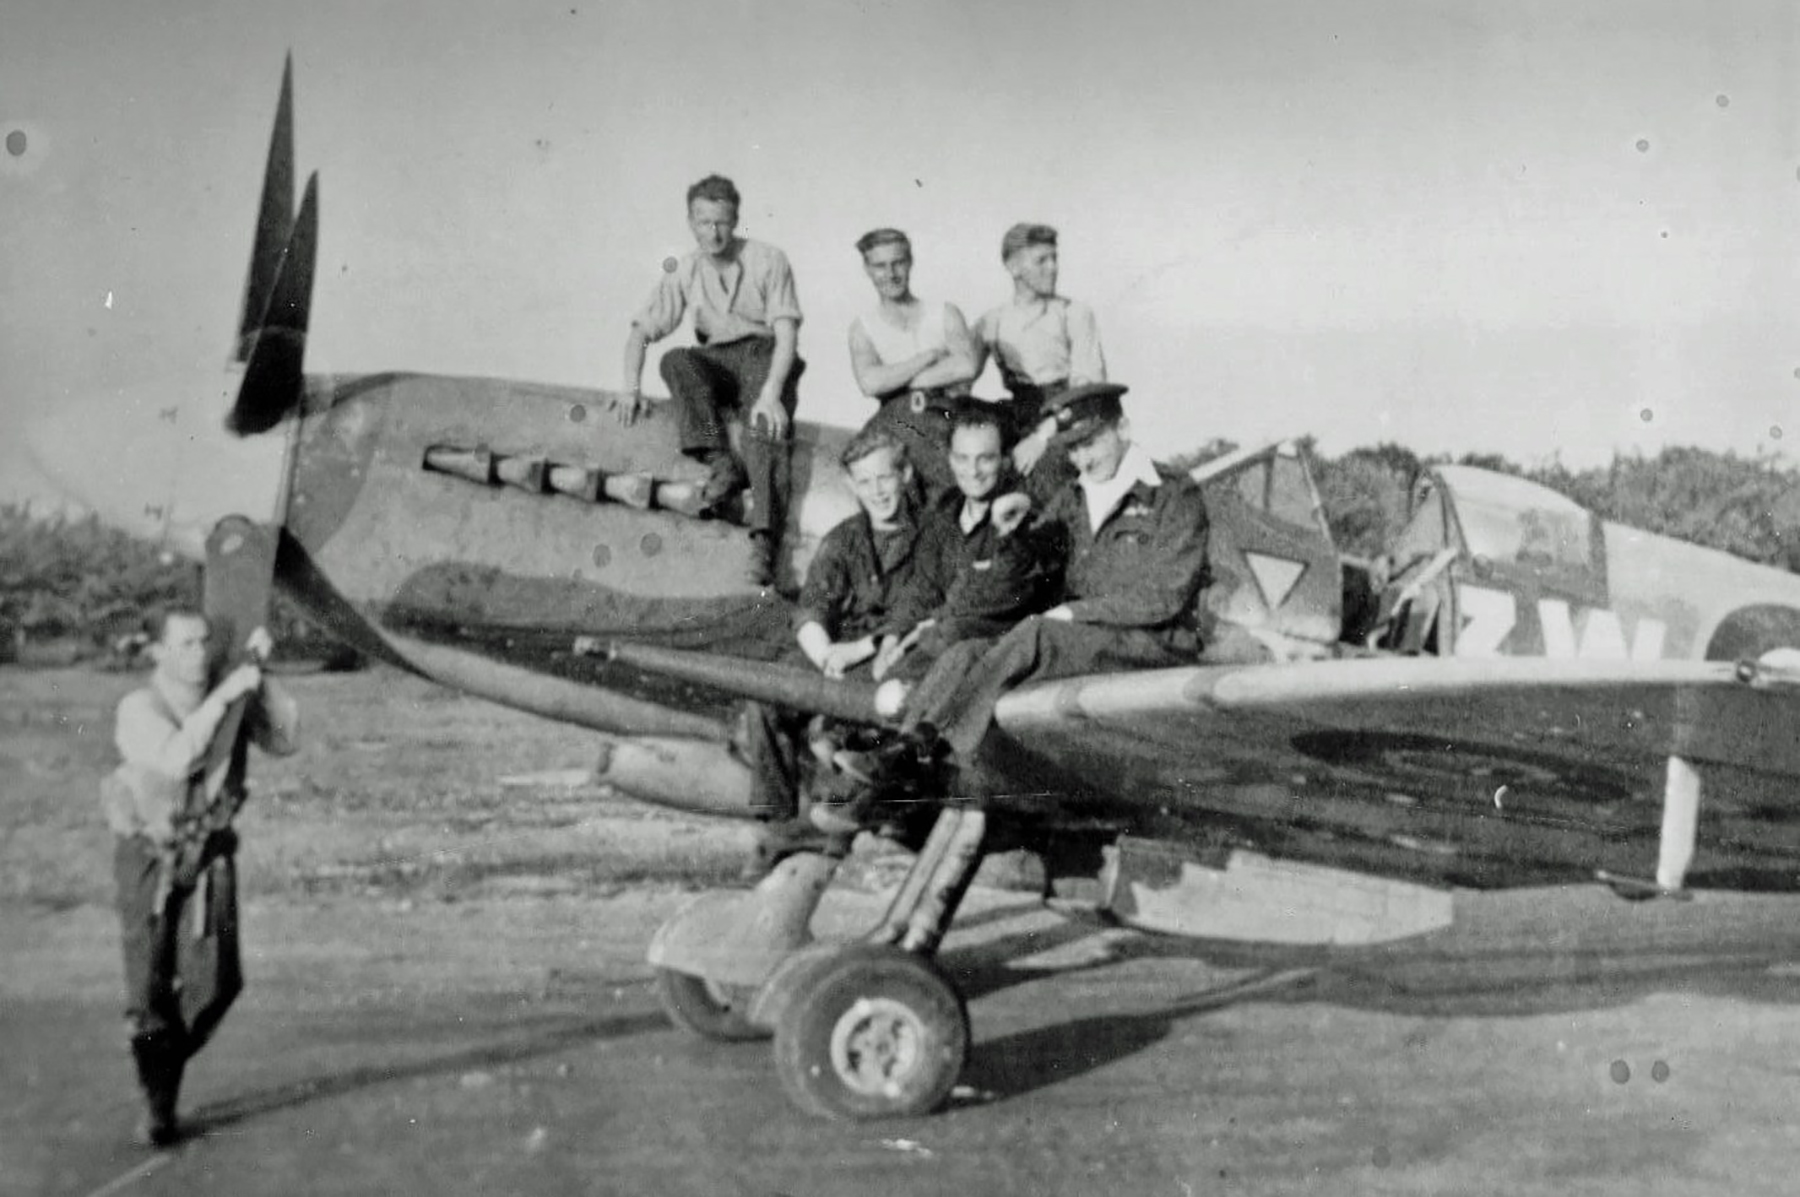 Aircrew and members of 322 Squadron with a Spitfire 01